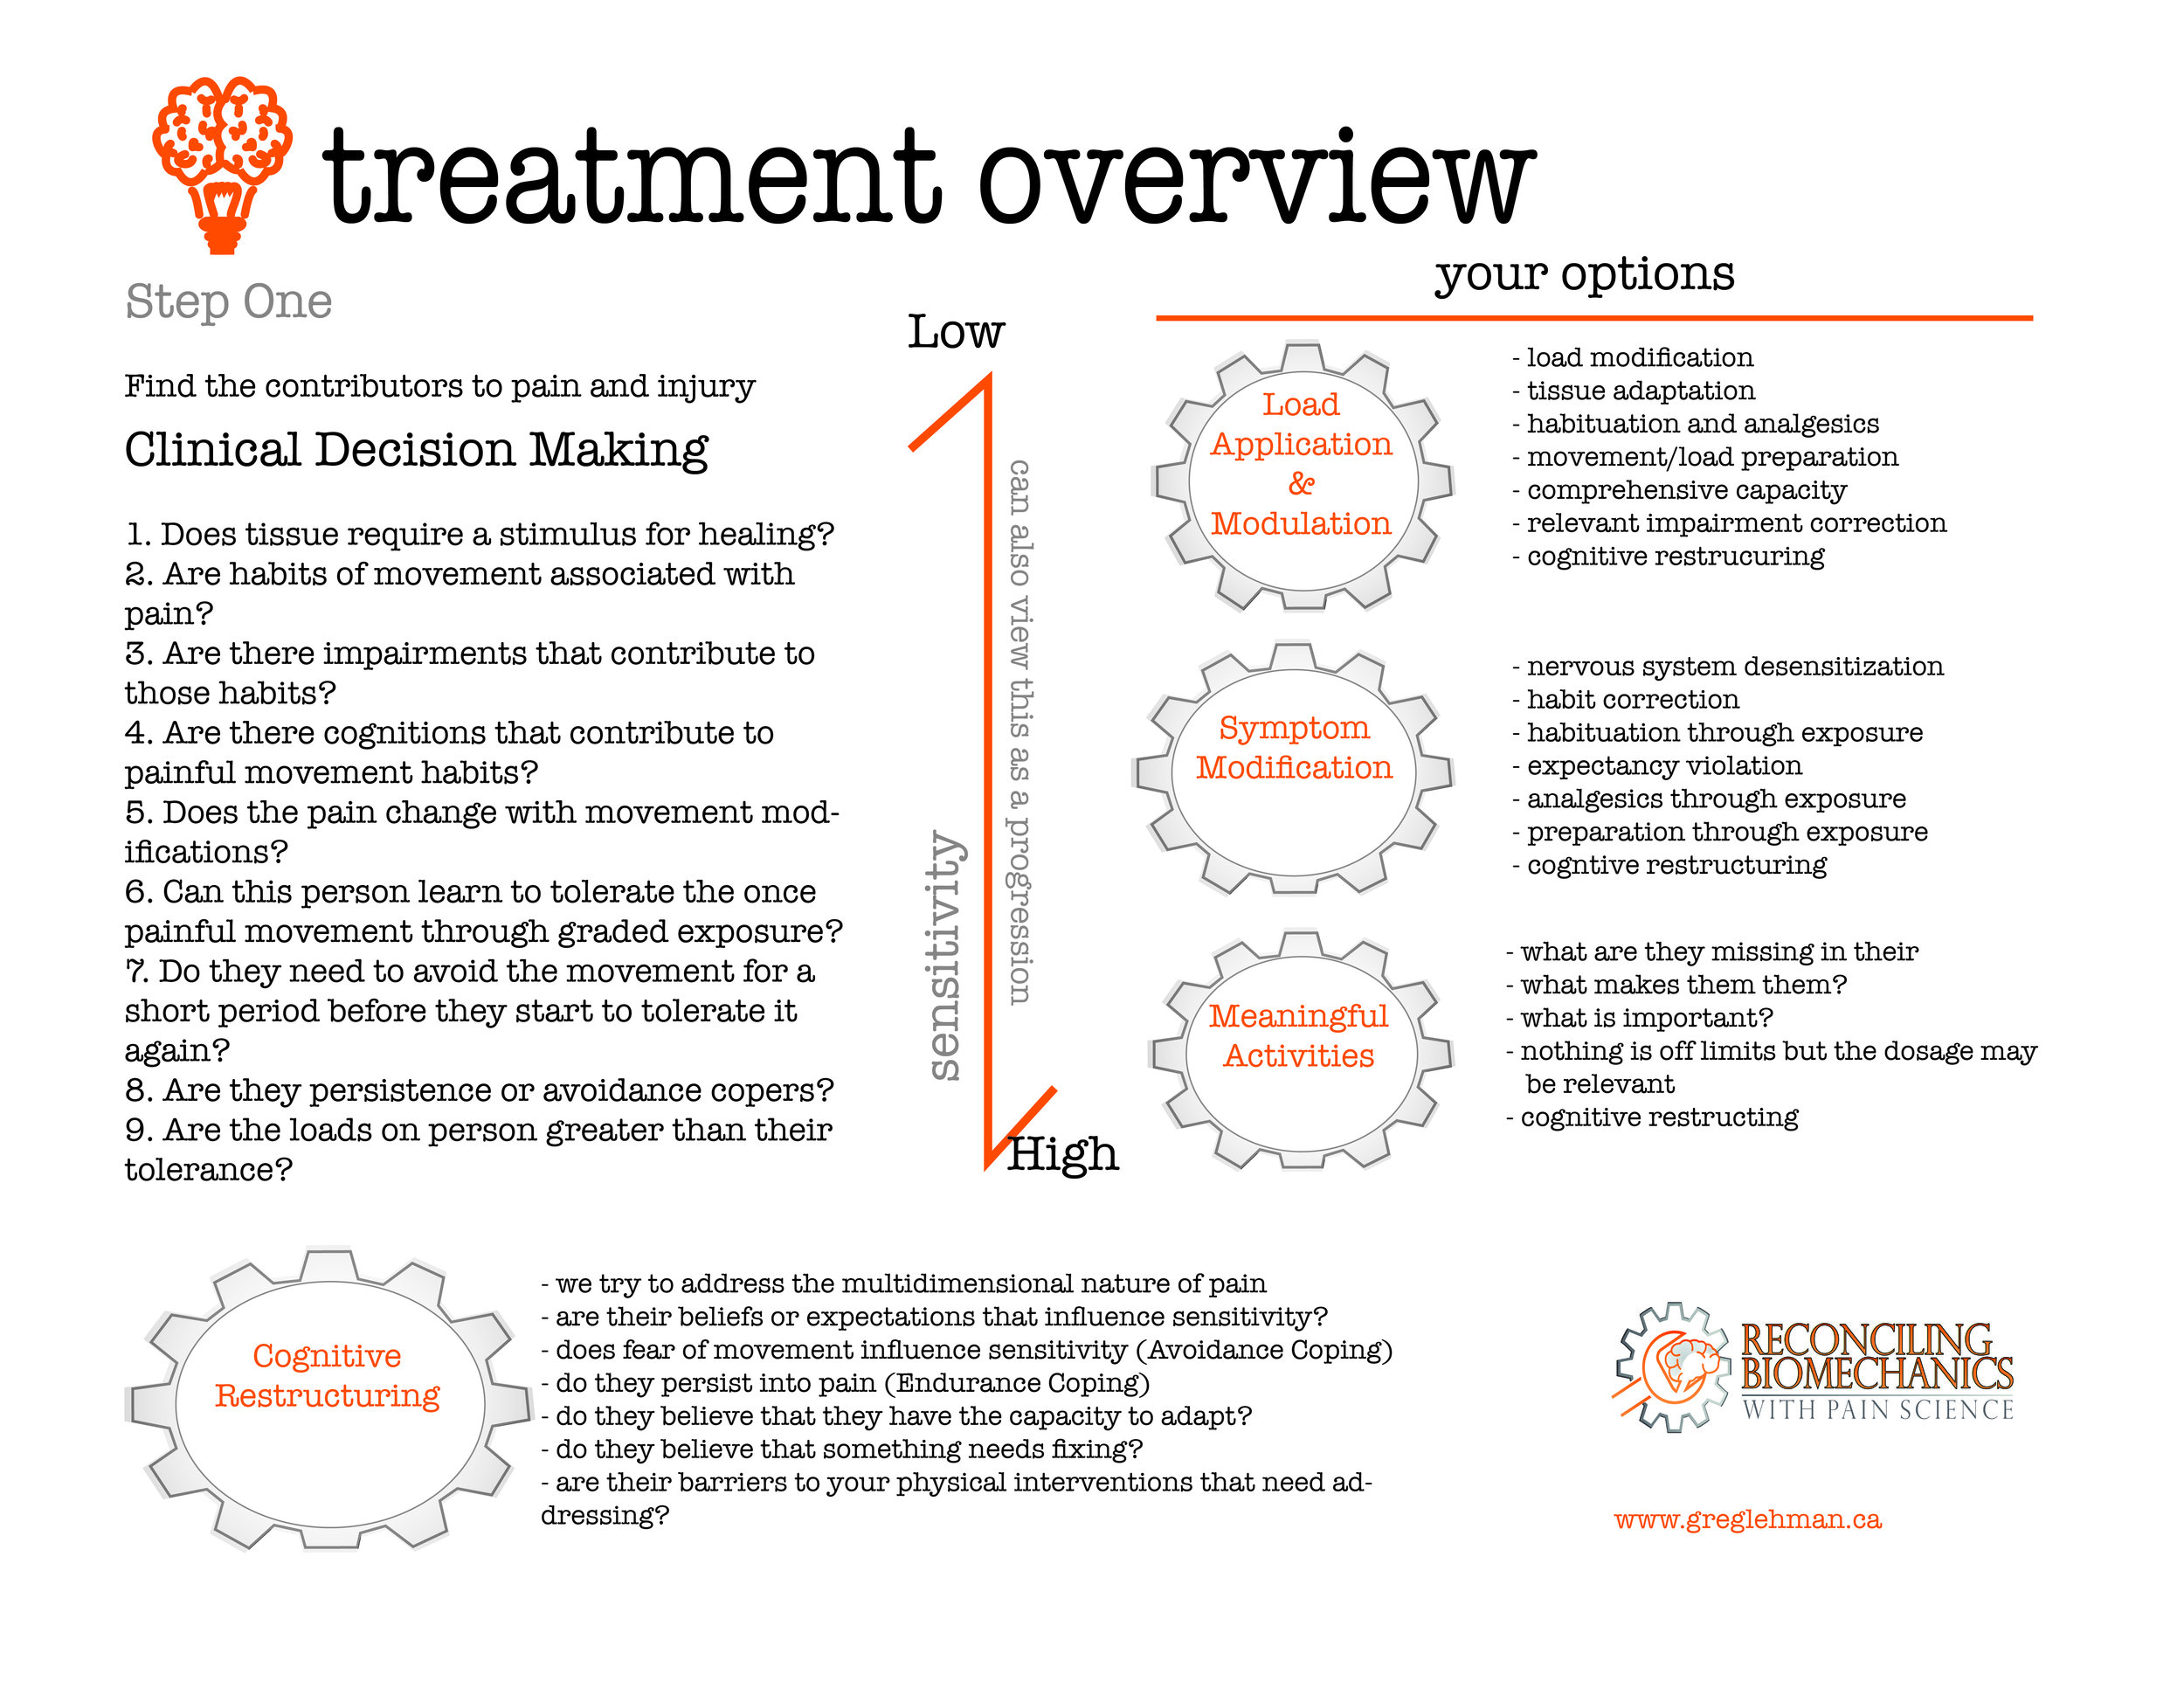 treatment overview details and CDM .jpg